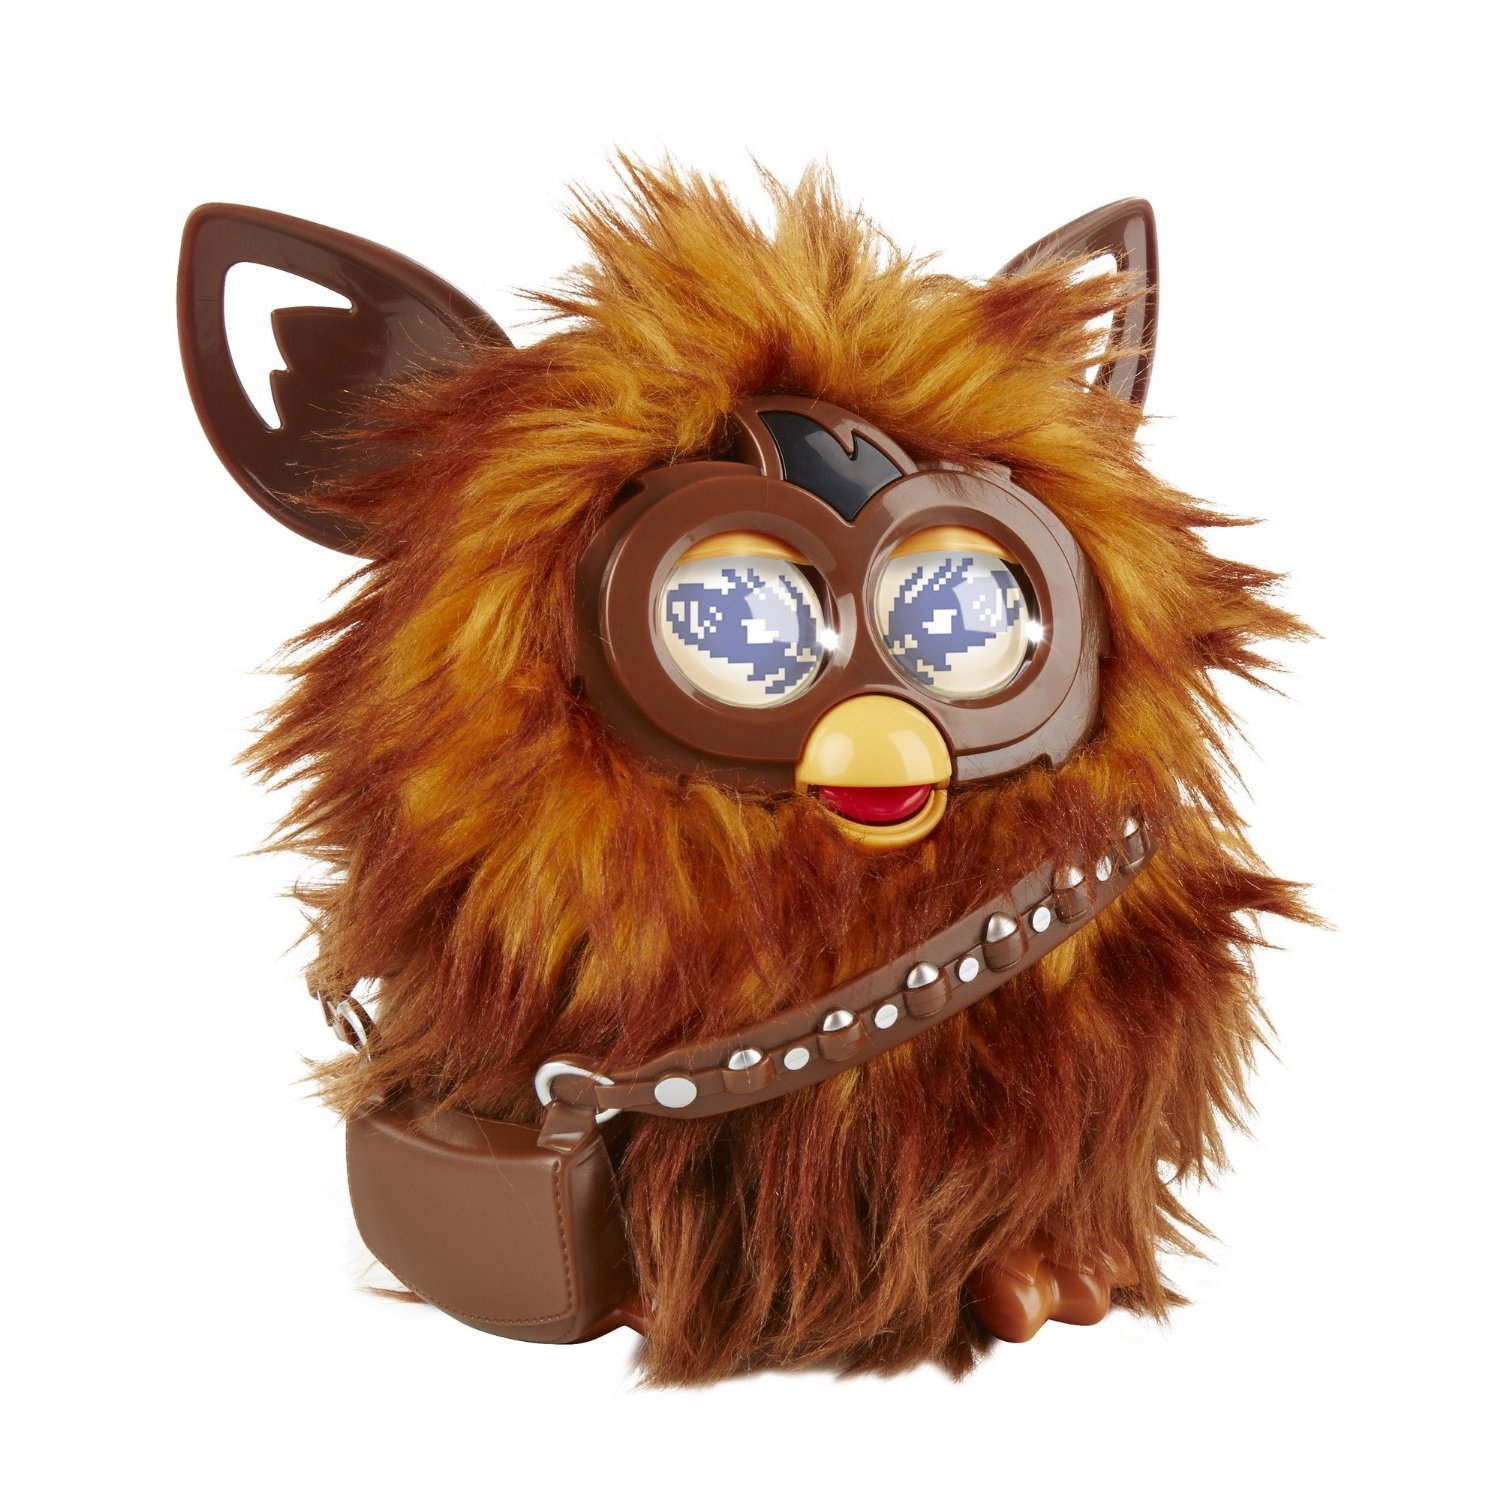 Image 1 of Star Wars Furby Furbacca Interactive Creature, Hasbro, 6+